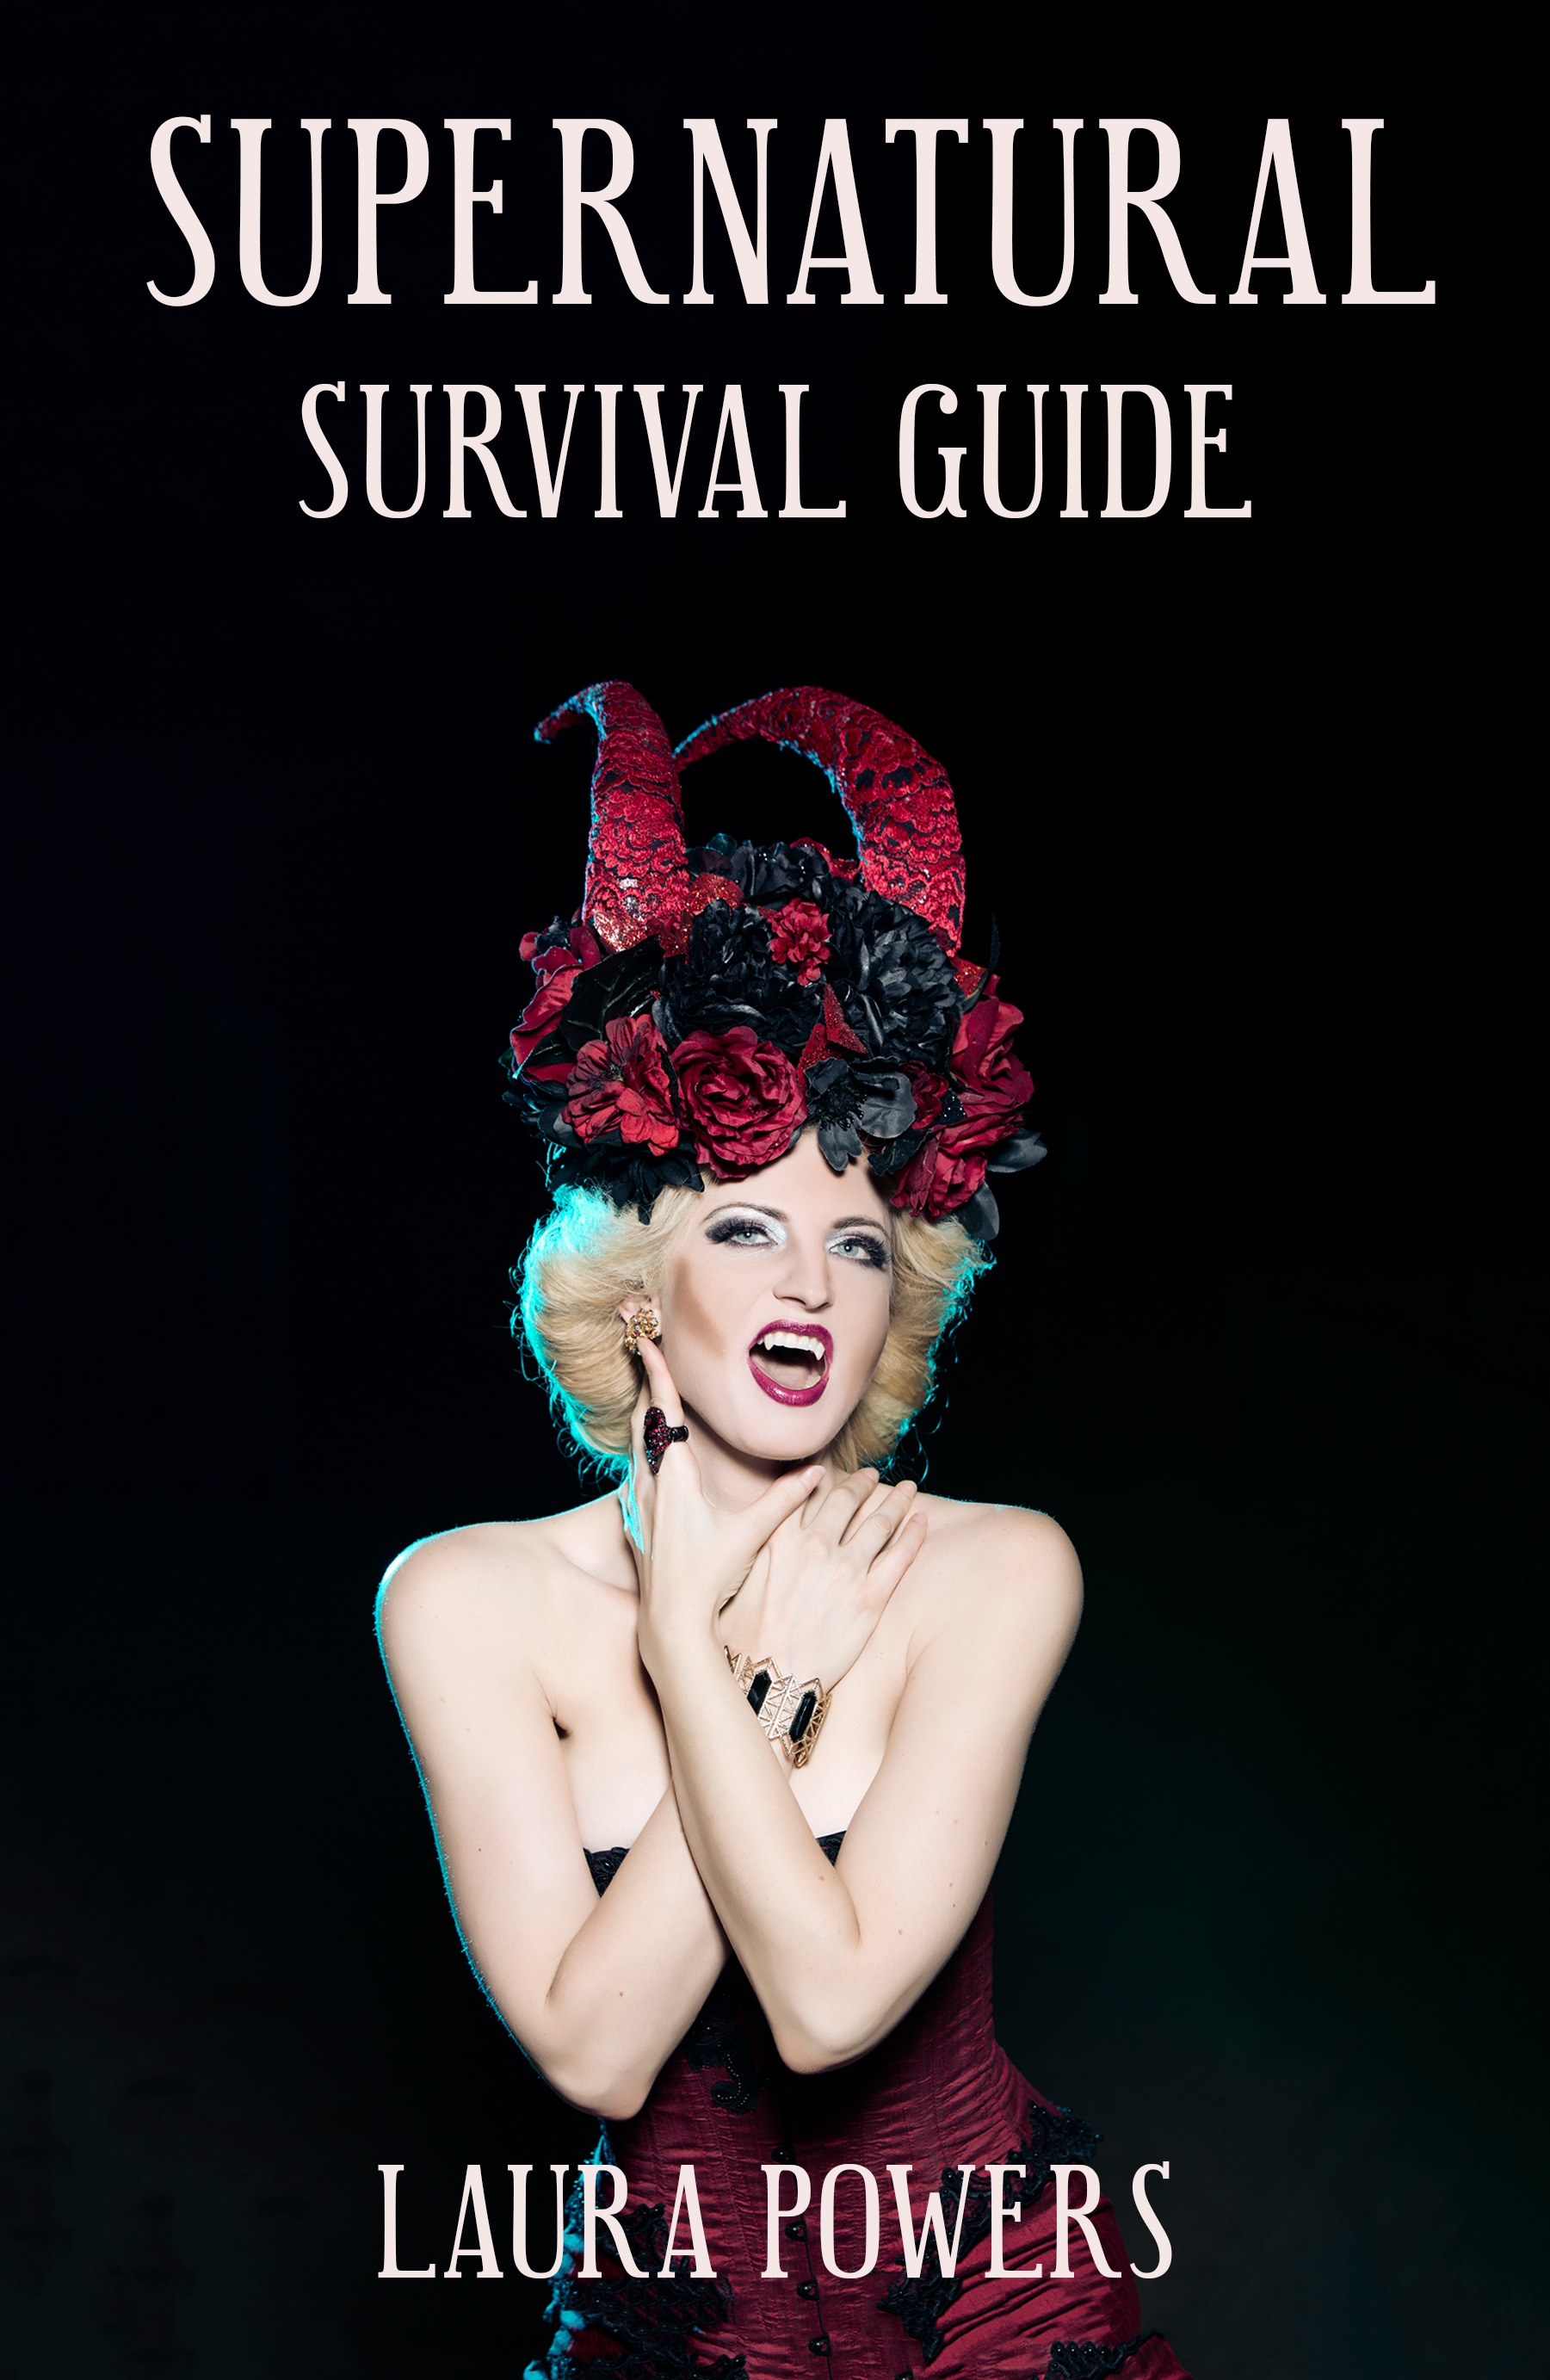 Powers Survival Guide Cropped Front Cover Only JPG.jpg